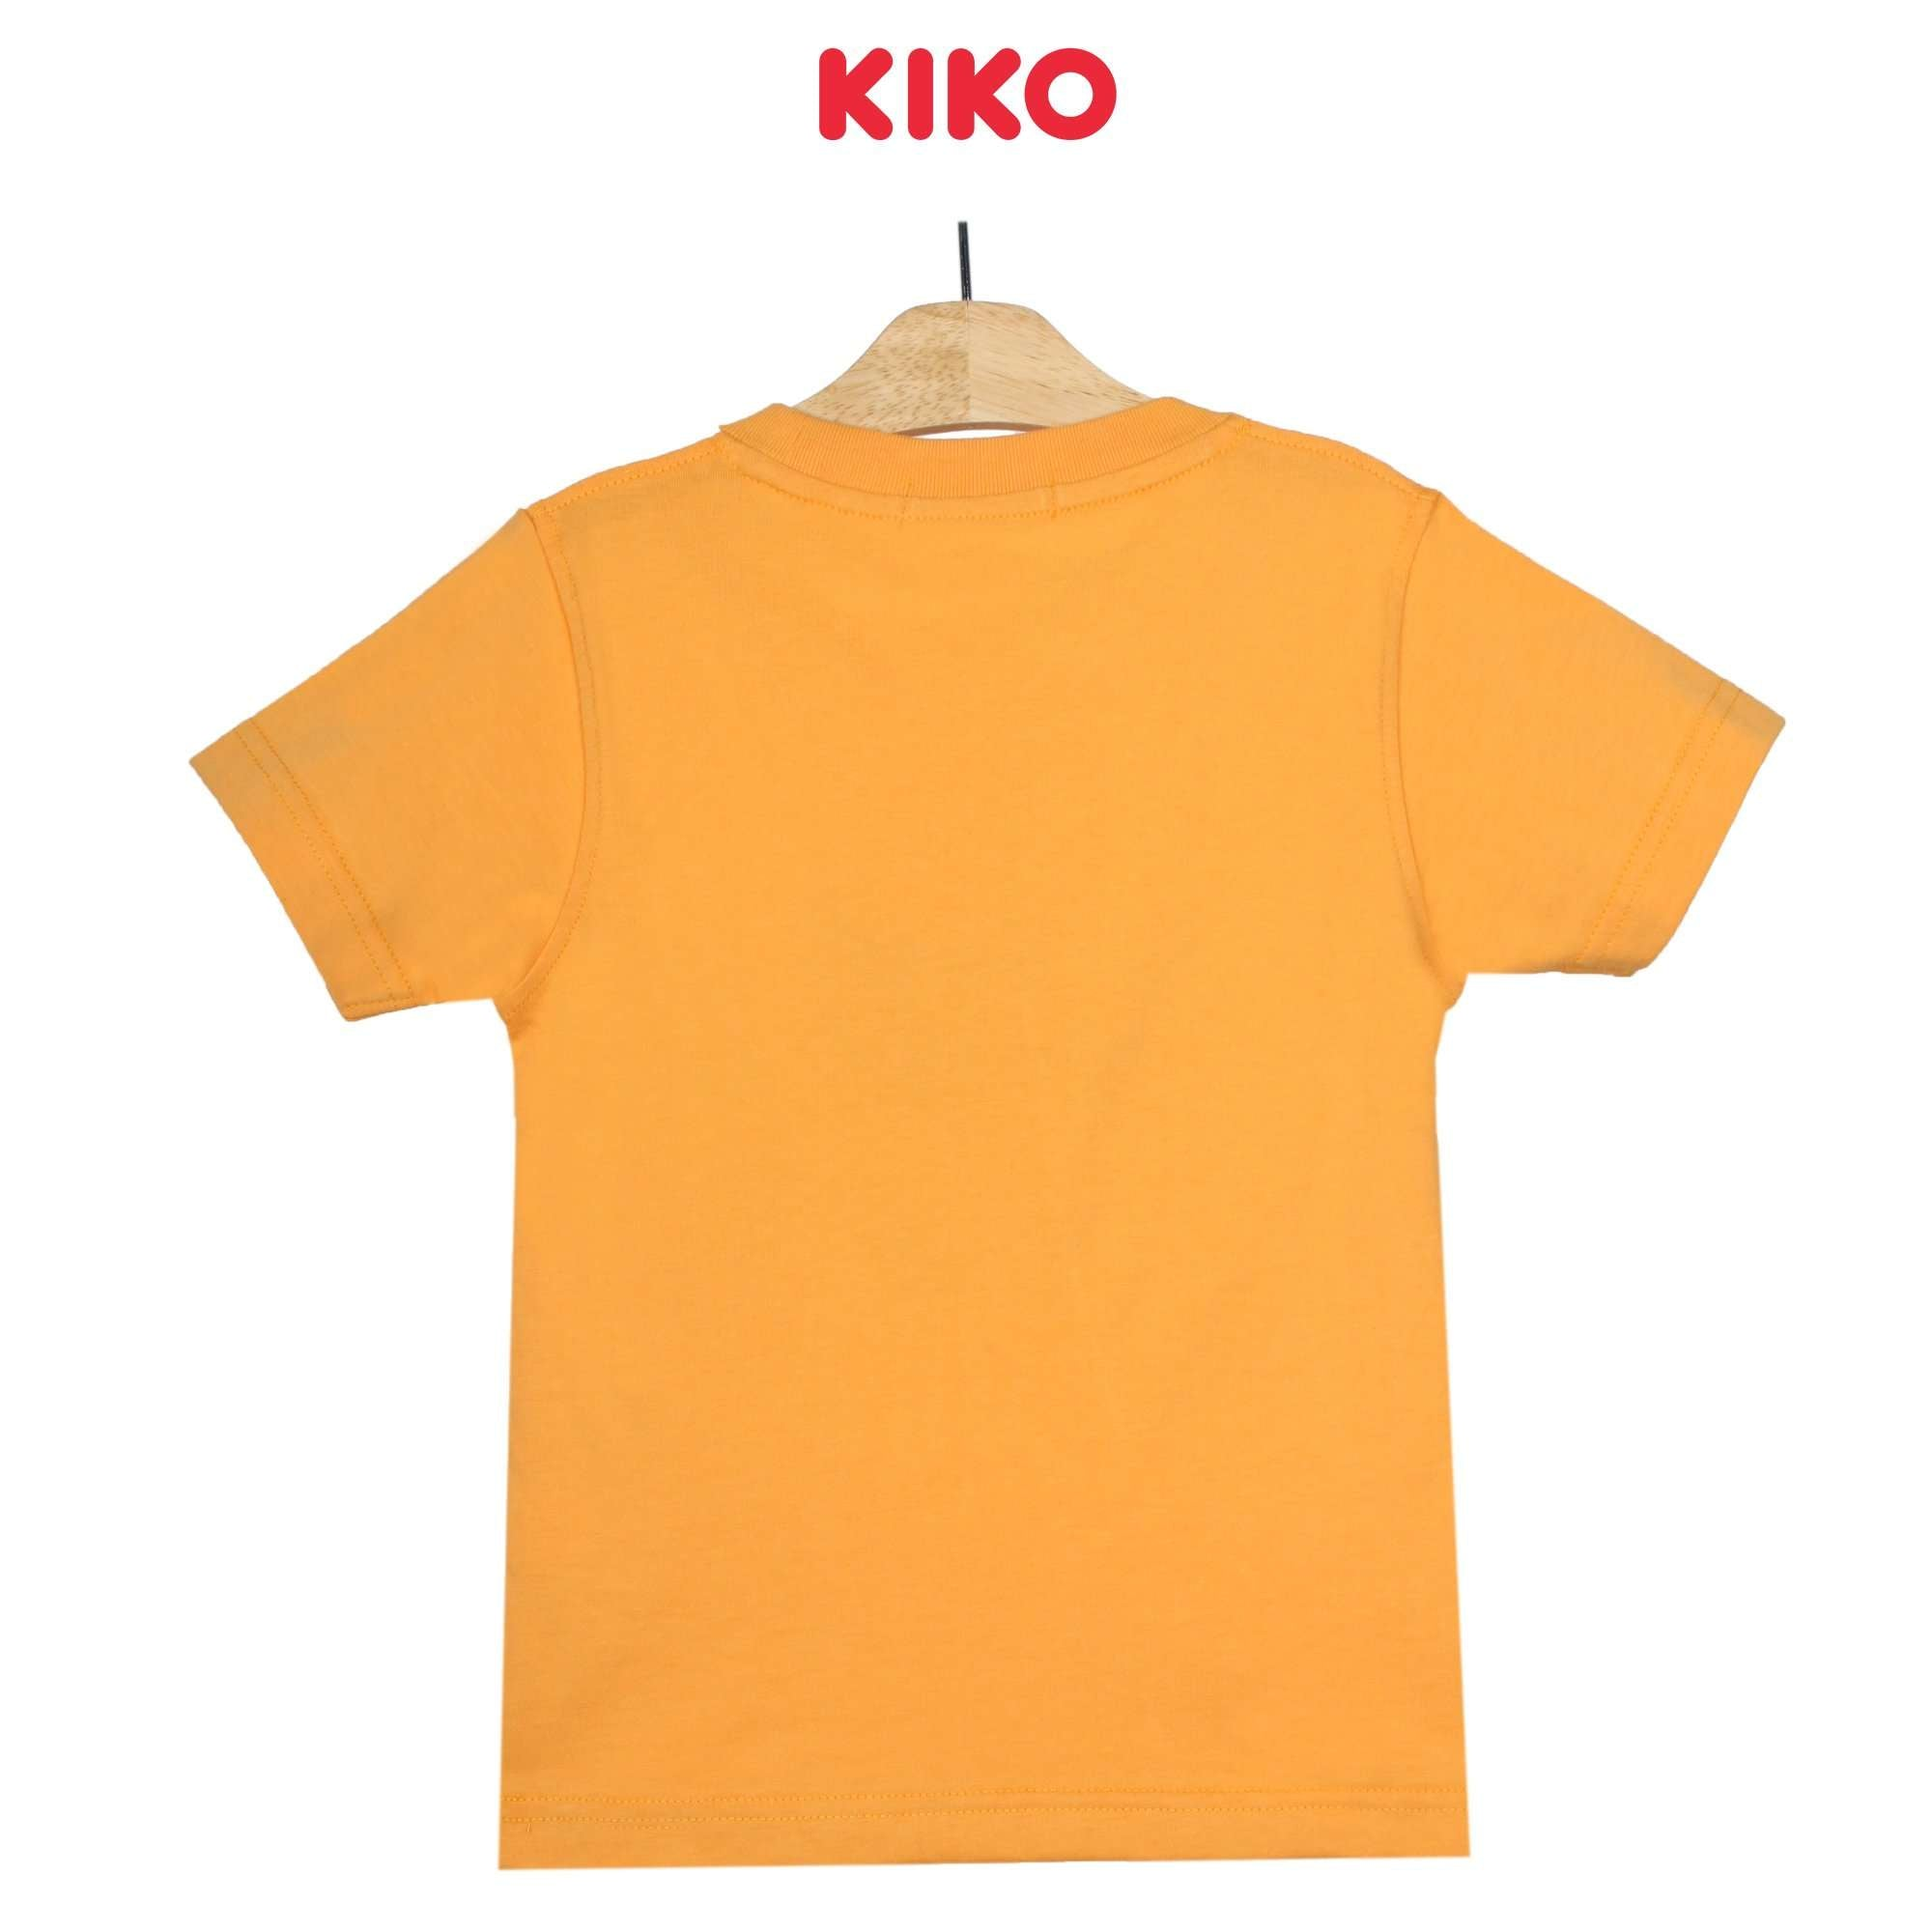 KIKO Boy Short Sleeve Tee - Orange 130093-111 : Buy KIKO online at CMG.MY